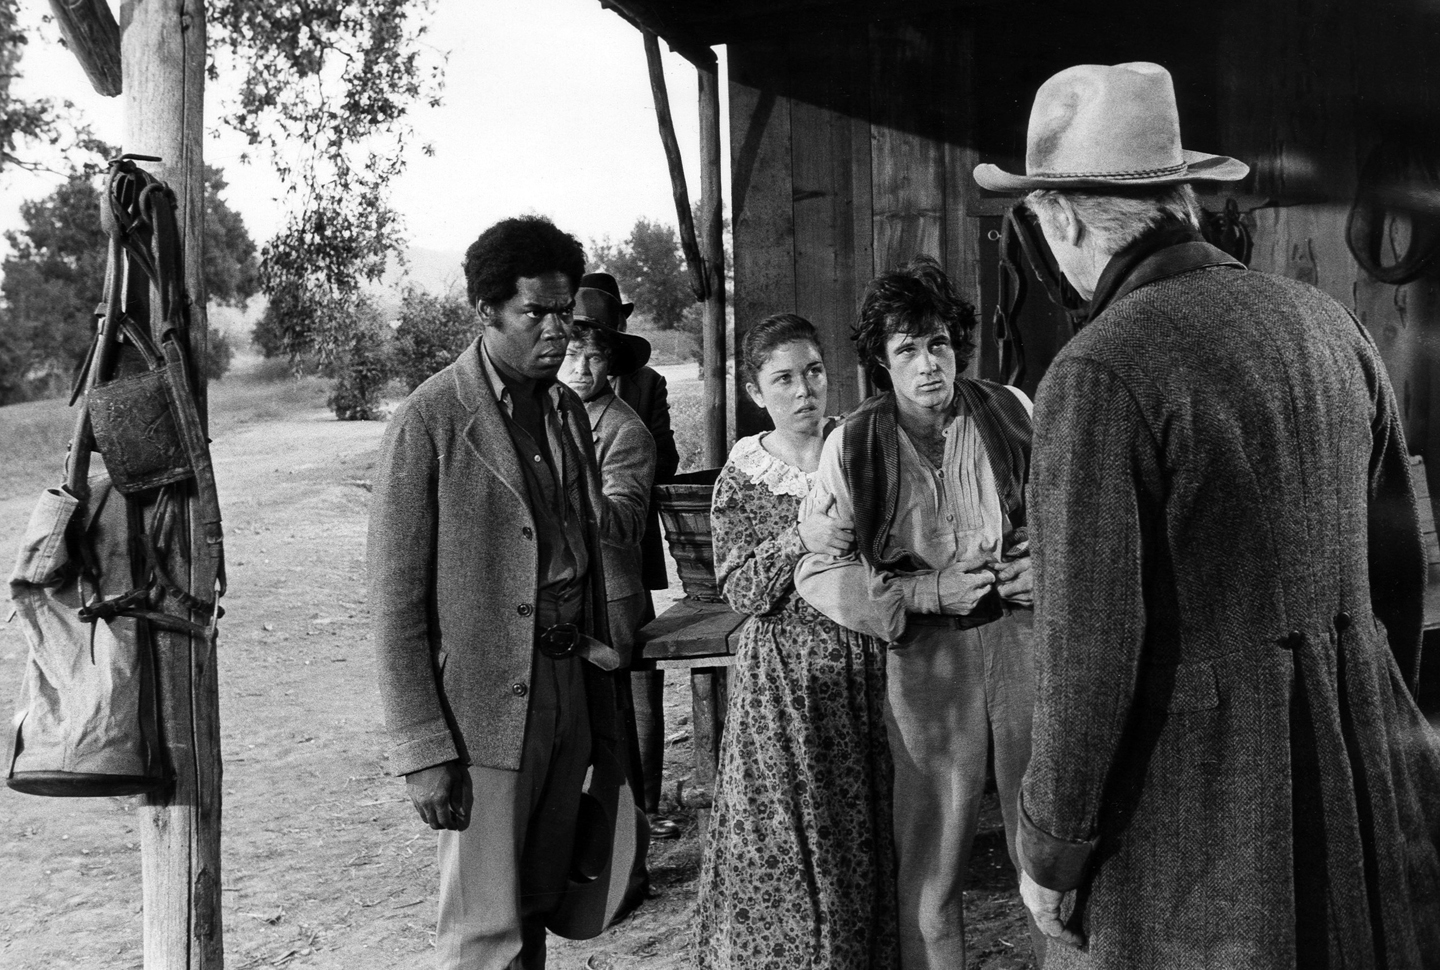 ROOTS - Airdate January 23, 1977. GEORGE STANFORD BROWN; LANE BINKLEY; BRAD DAVIS; LLOYD BRIDGES